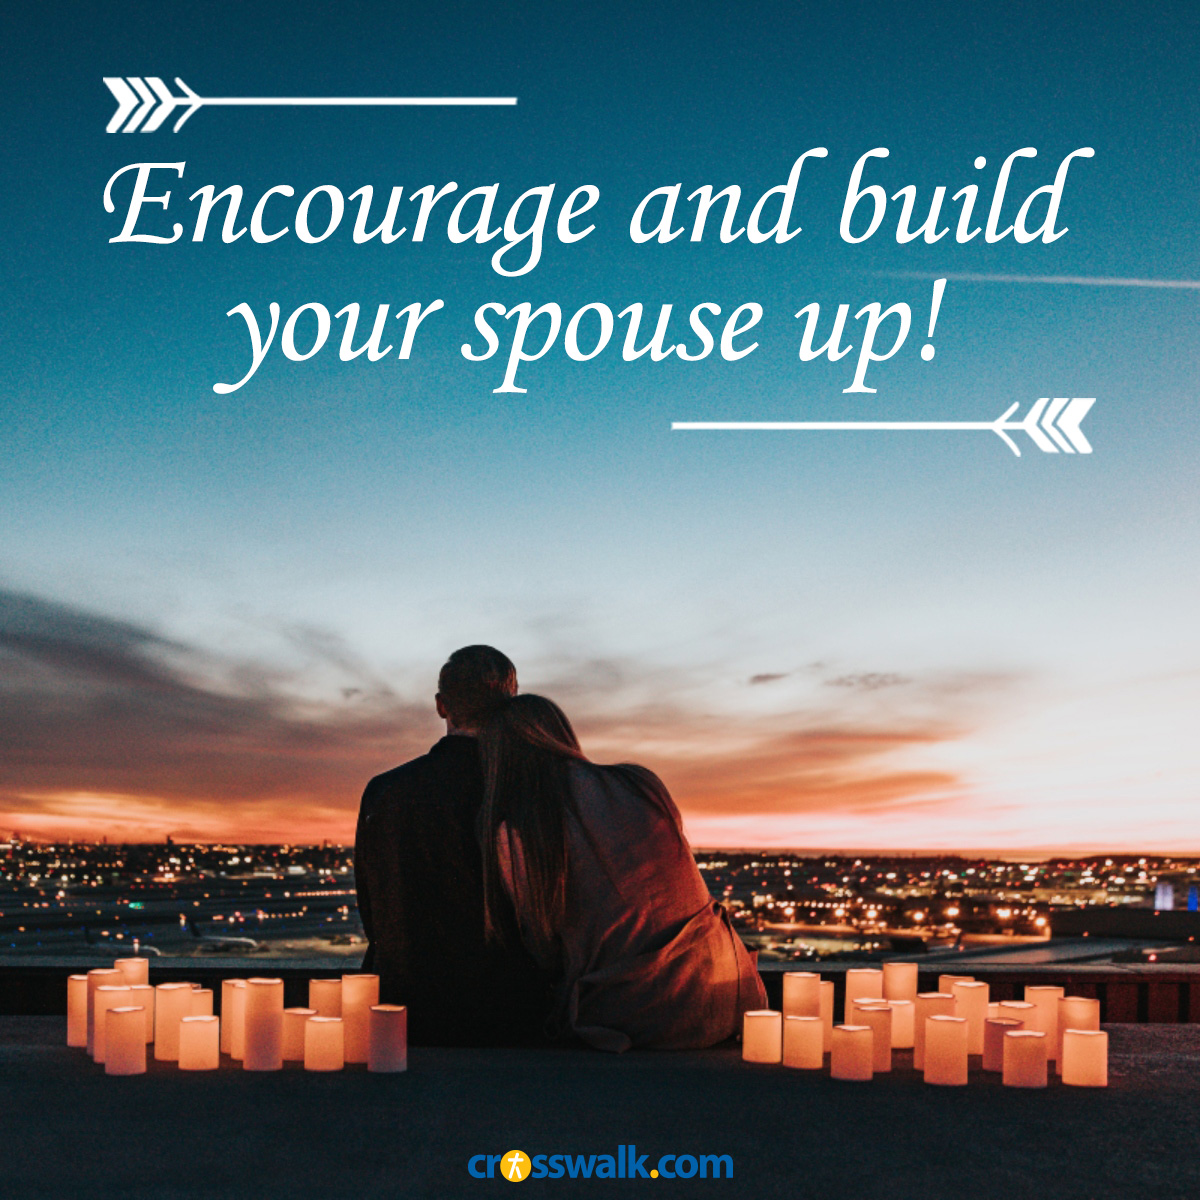 Encourage and build your spouse up!